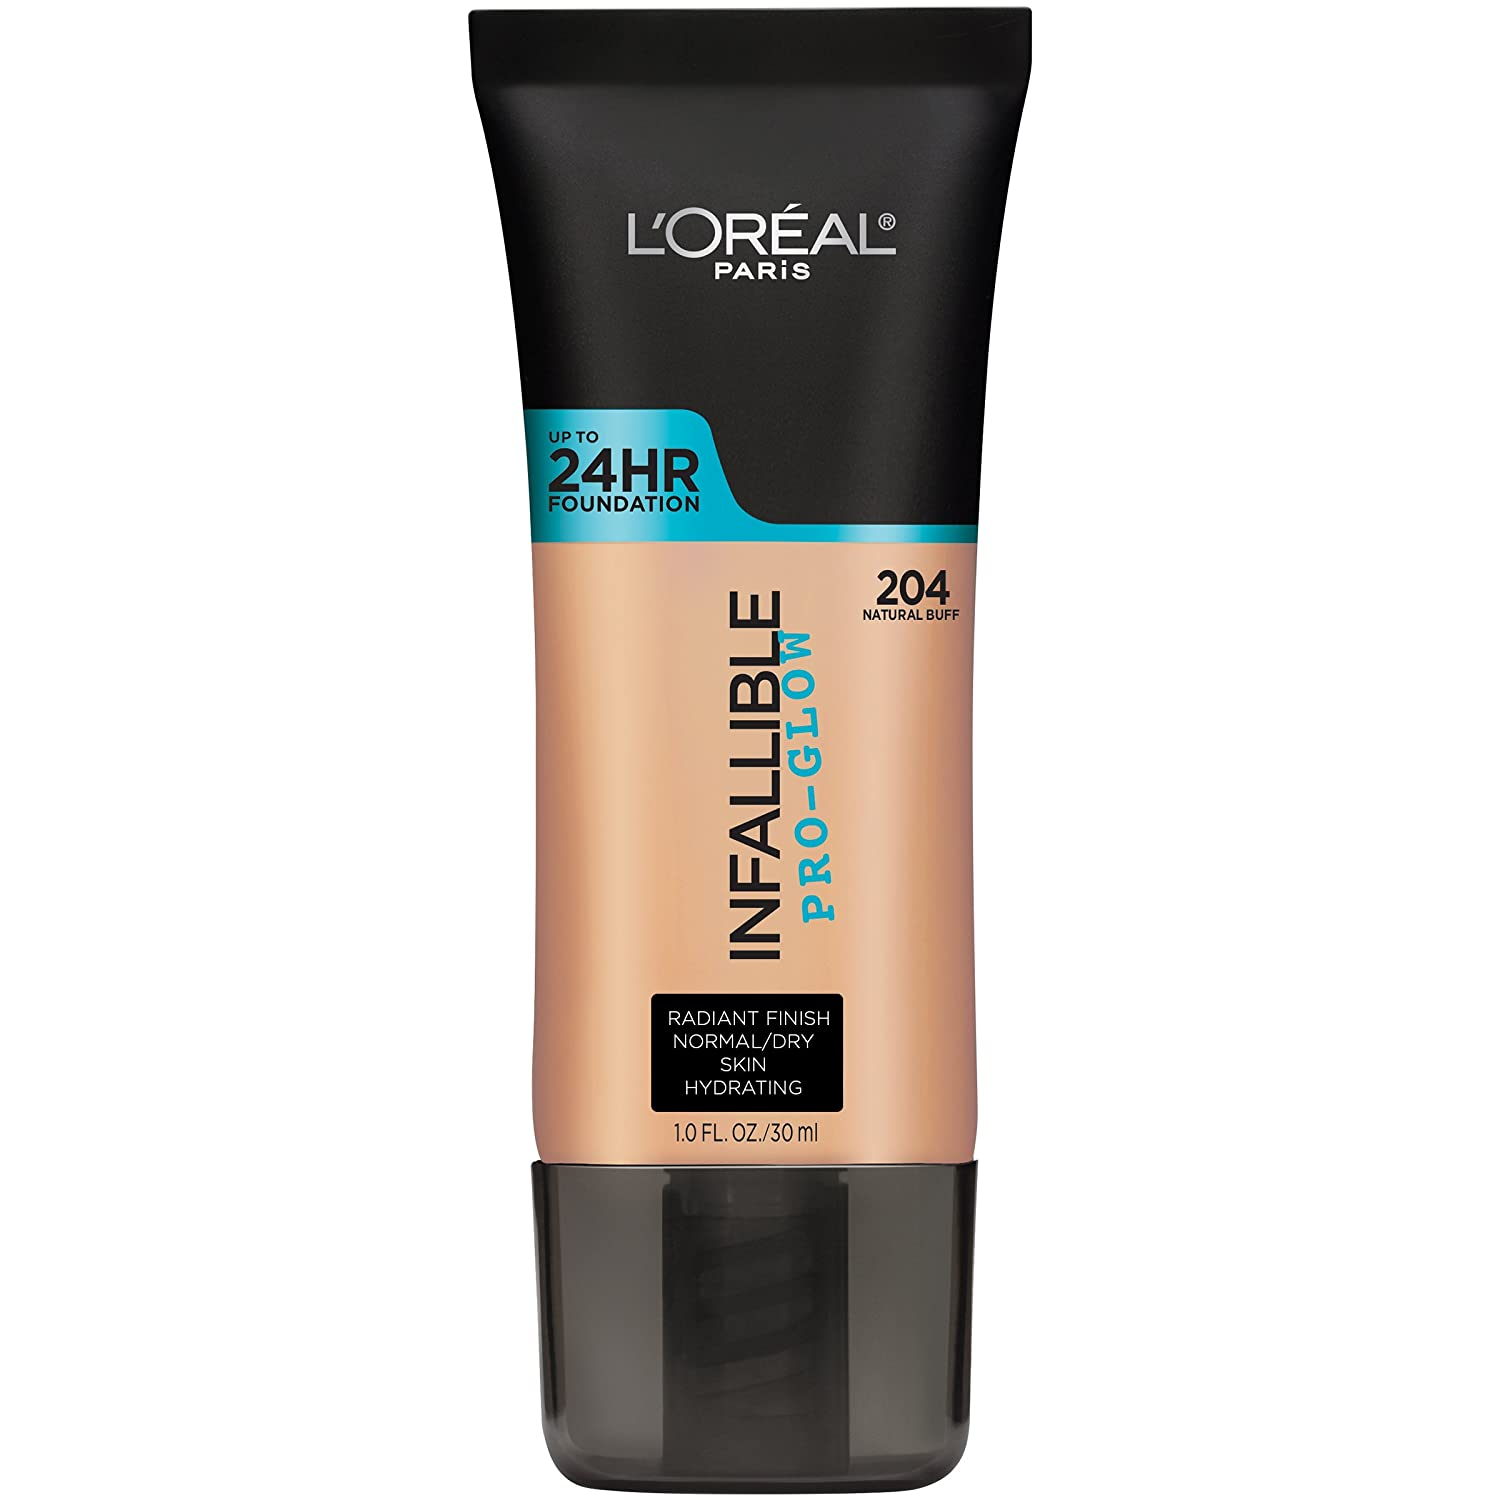 L'Oreal Paris Makeup Infallible Up to 24HR Pro-Glow Foundation, 204 Natural Buff, 1 fl. oz.